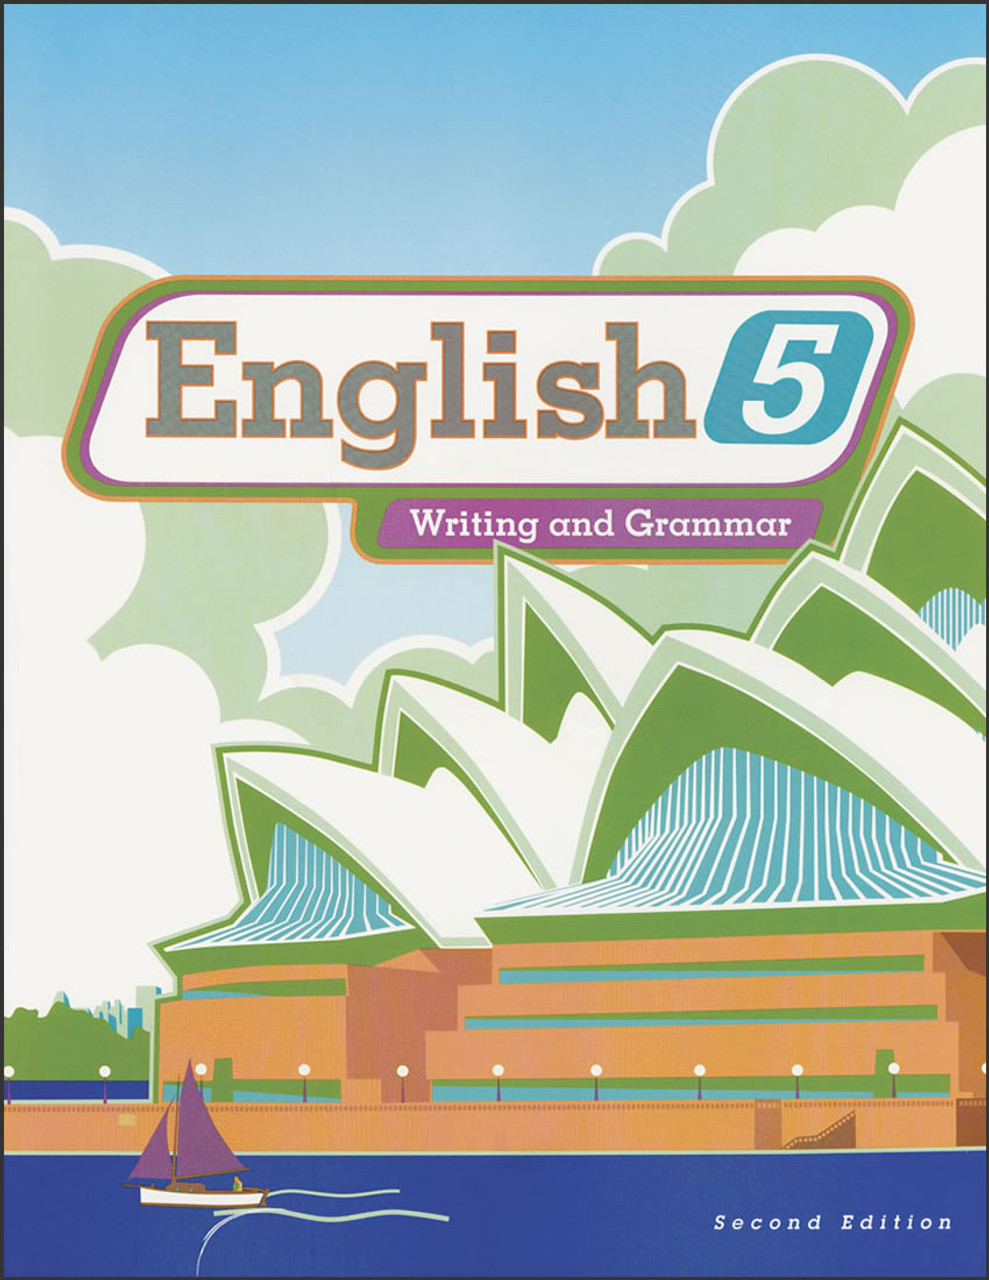 English 5: Writing and Grammar, 2nd edition